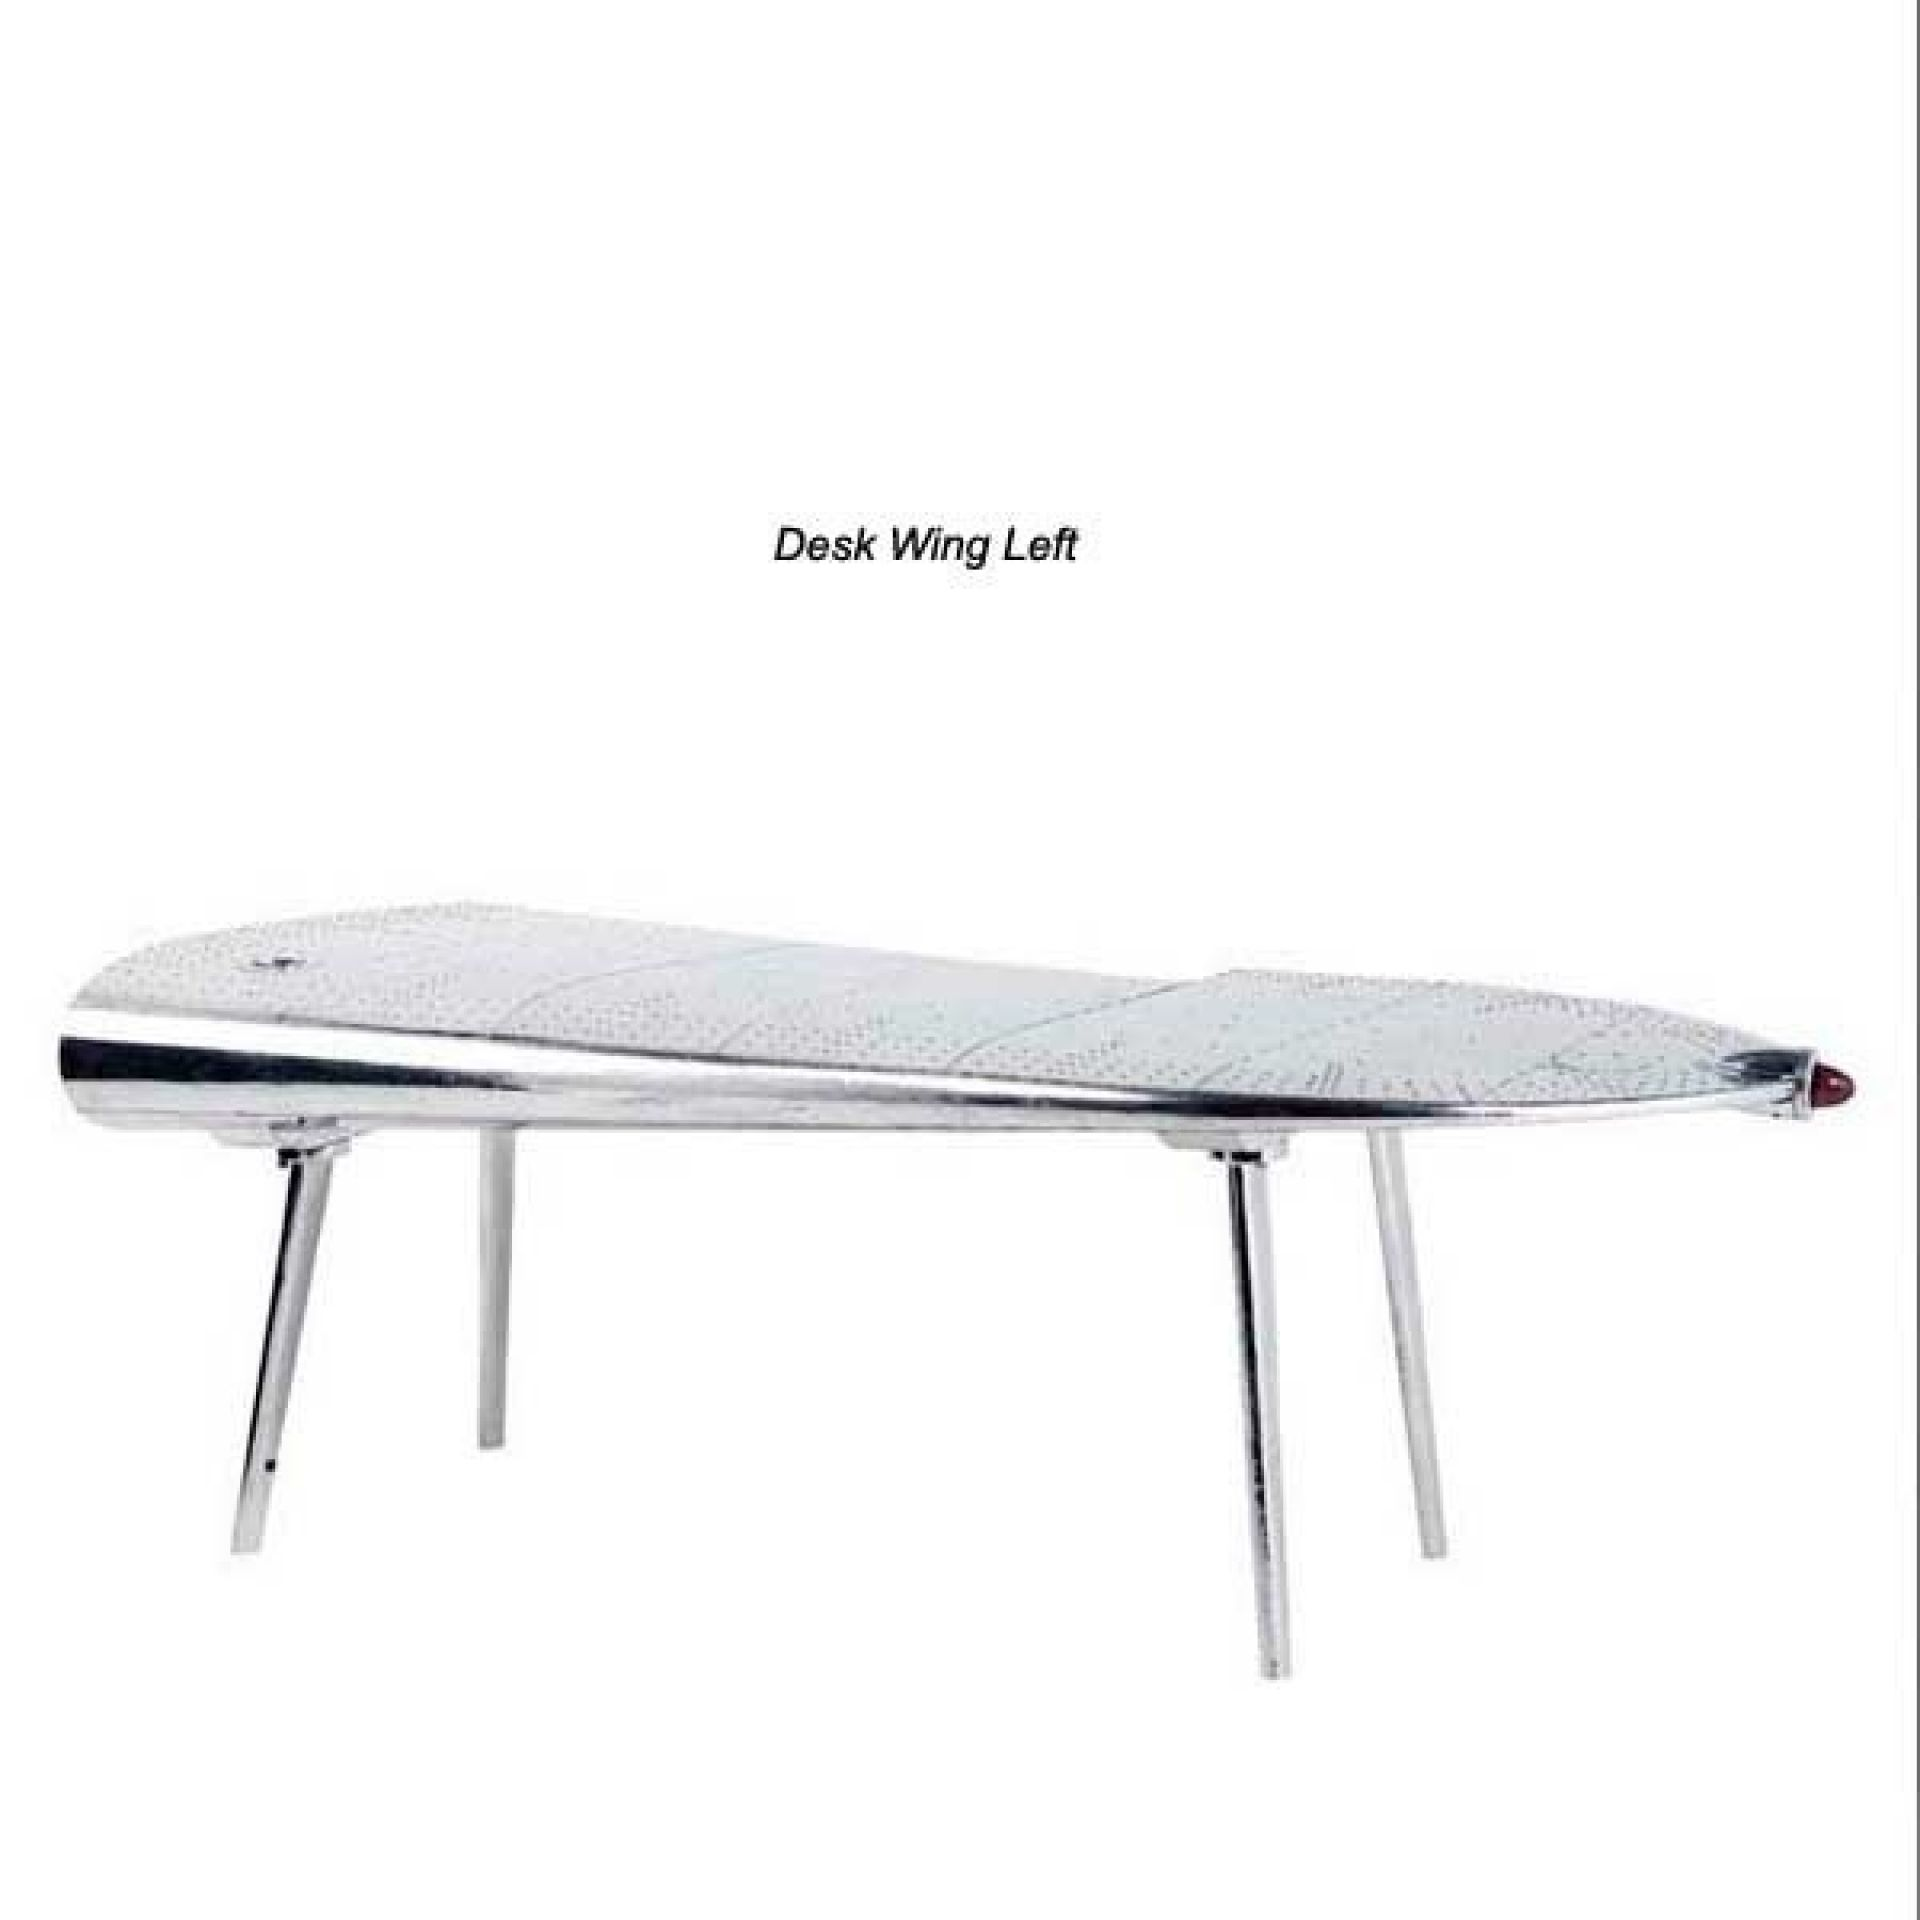 LEFT WING AIRCRAFT DESK WITH POLISHED ALUMINUM STRUCTURE 24-DESK WING